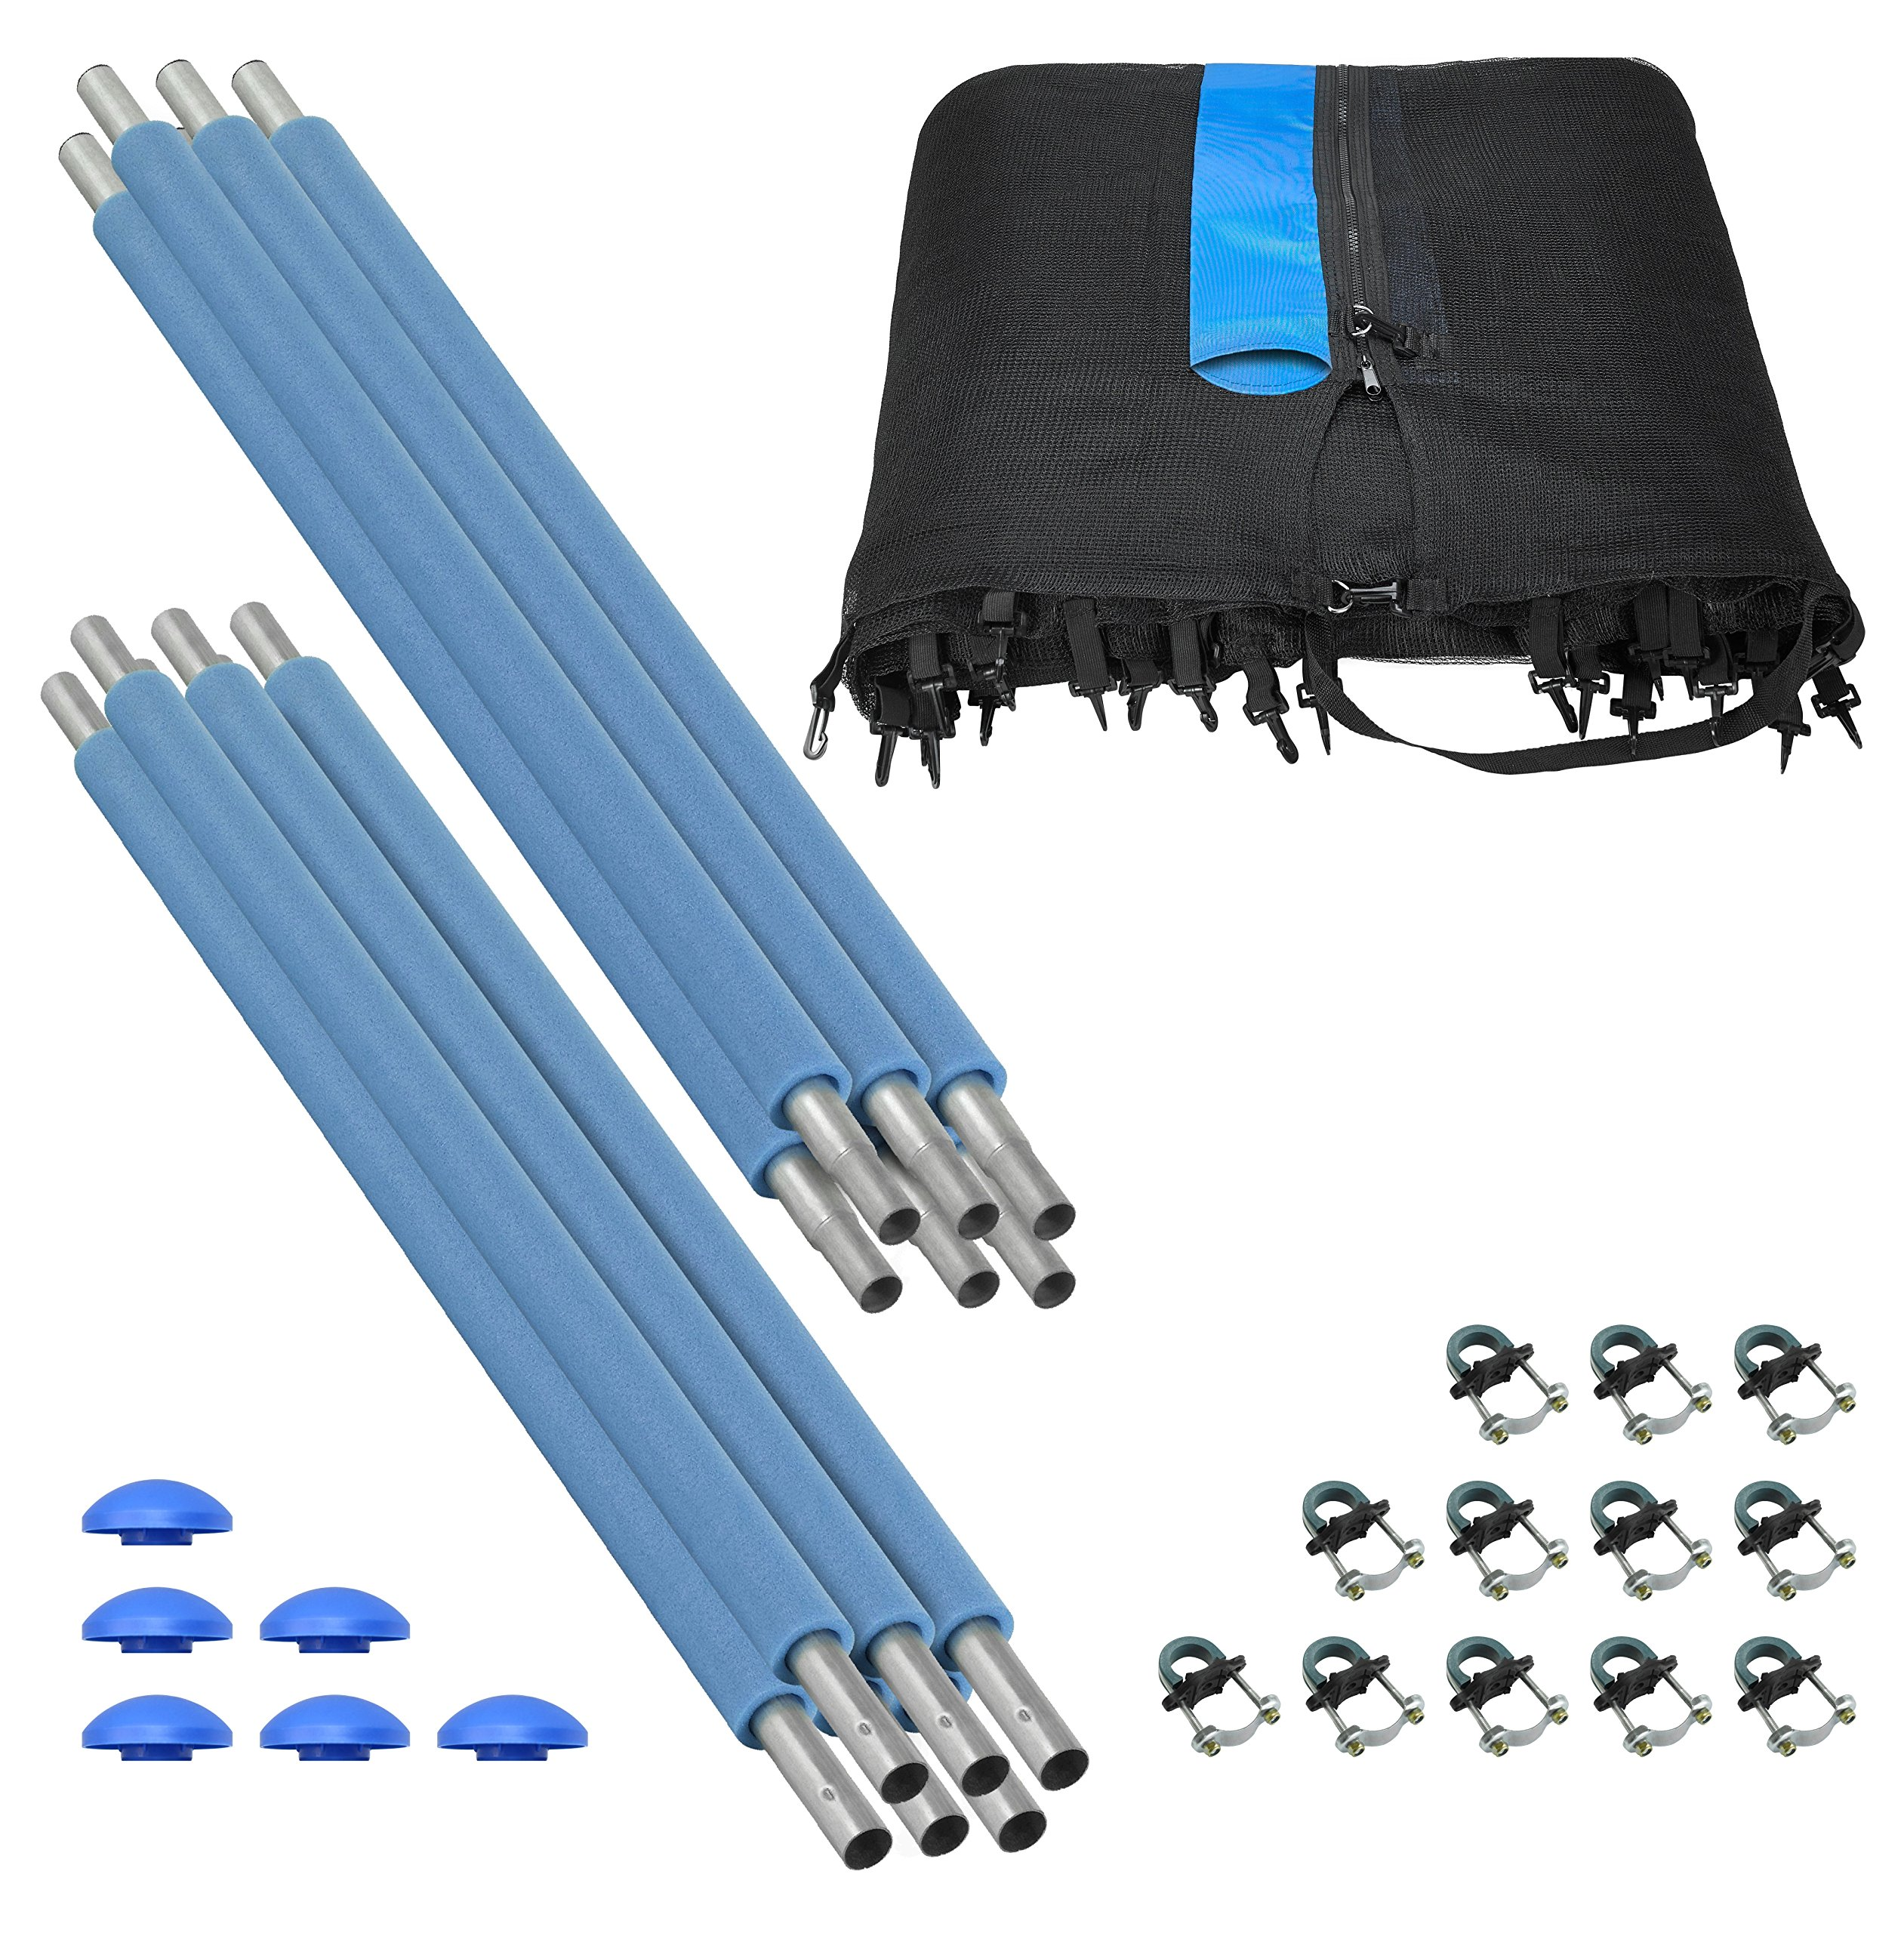 Trampoline Enclosure Set, to fit 15 FT. Round Frames, for 3 or 6 W-Shaped Legs -Set Includes: Net, Poles & Hardware Only